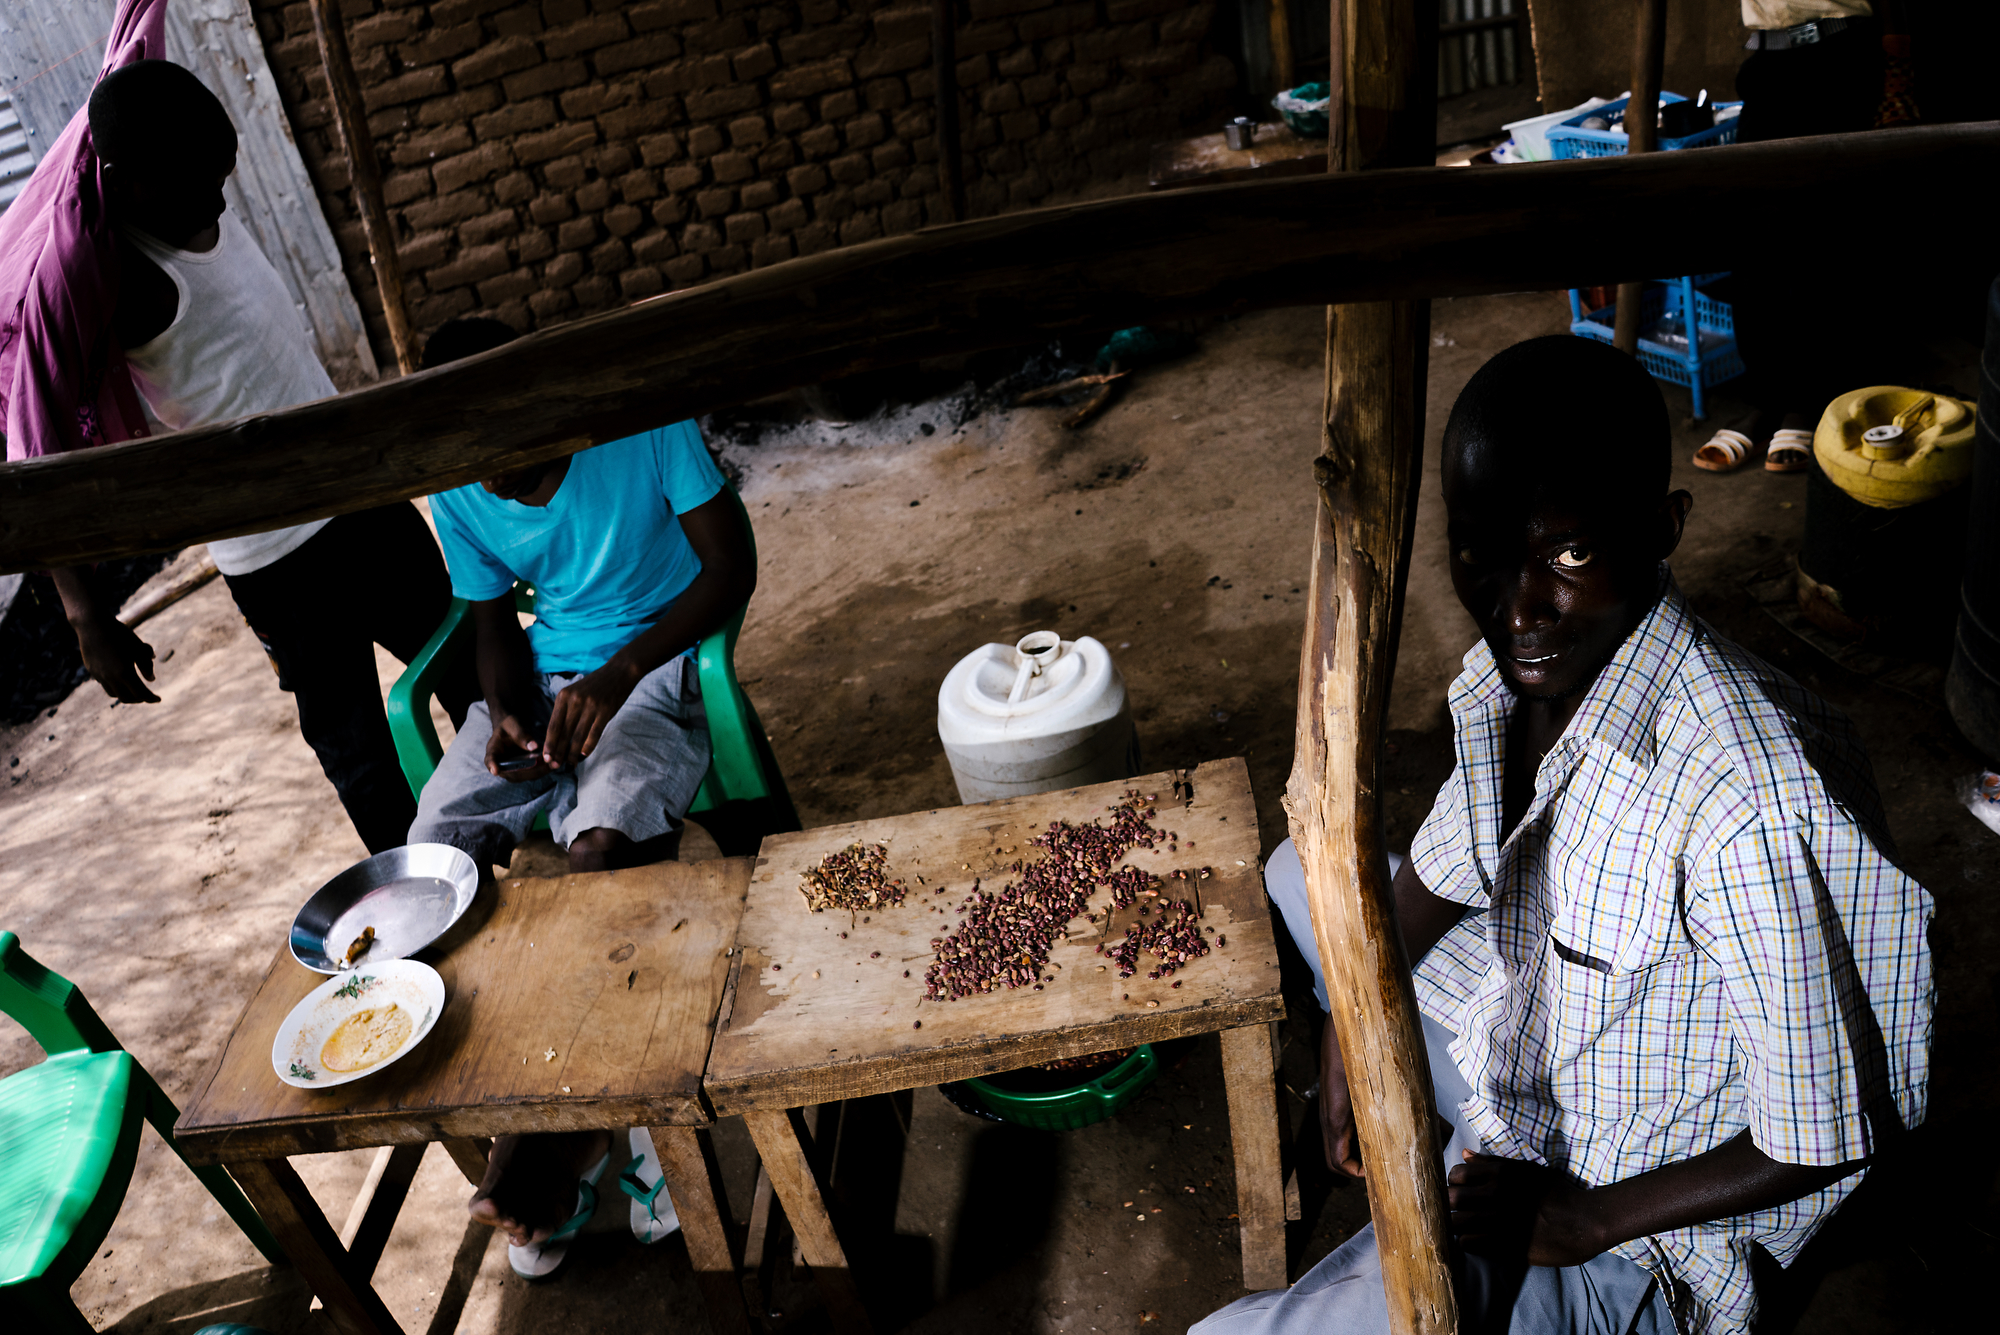 Men cook at a restaurant in Kakuma. The cafe is owned by a gay refugee from Uganda, and all of his employees are also gay Ugandans.